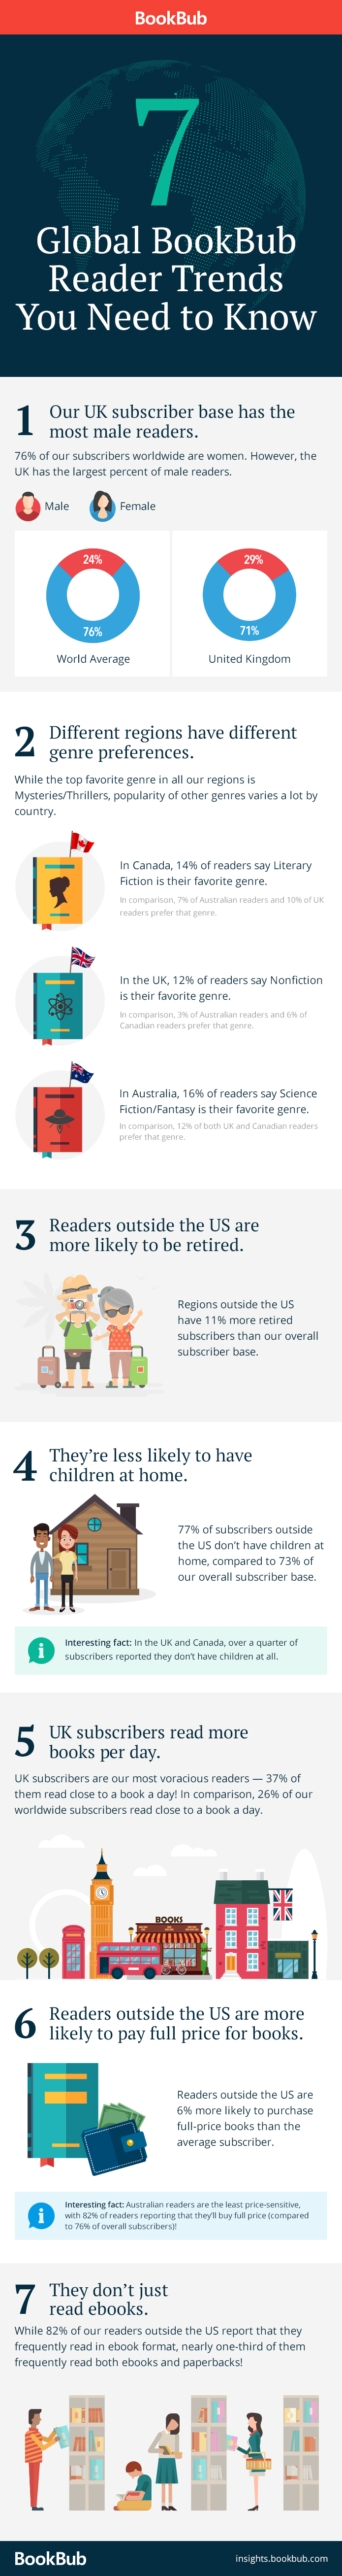 Global BookBub Reader Trends You Need to Know